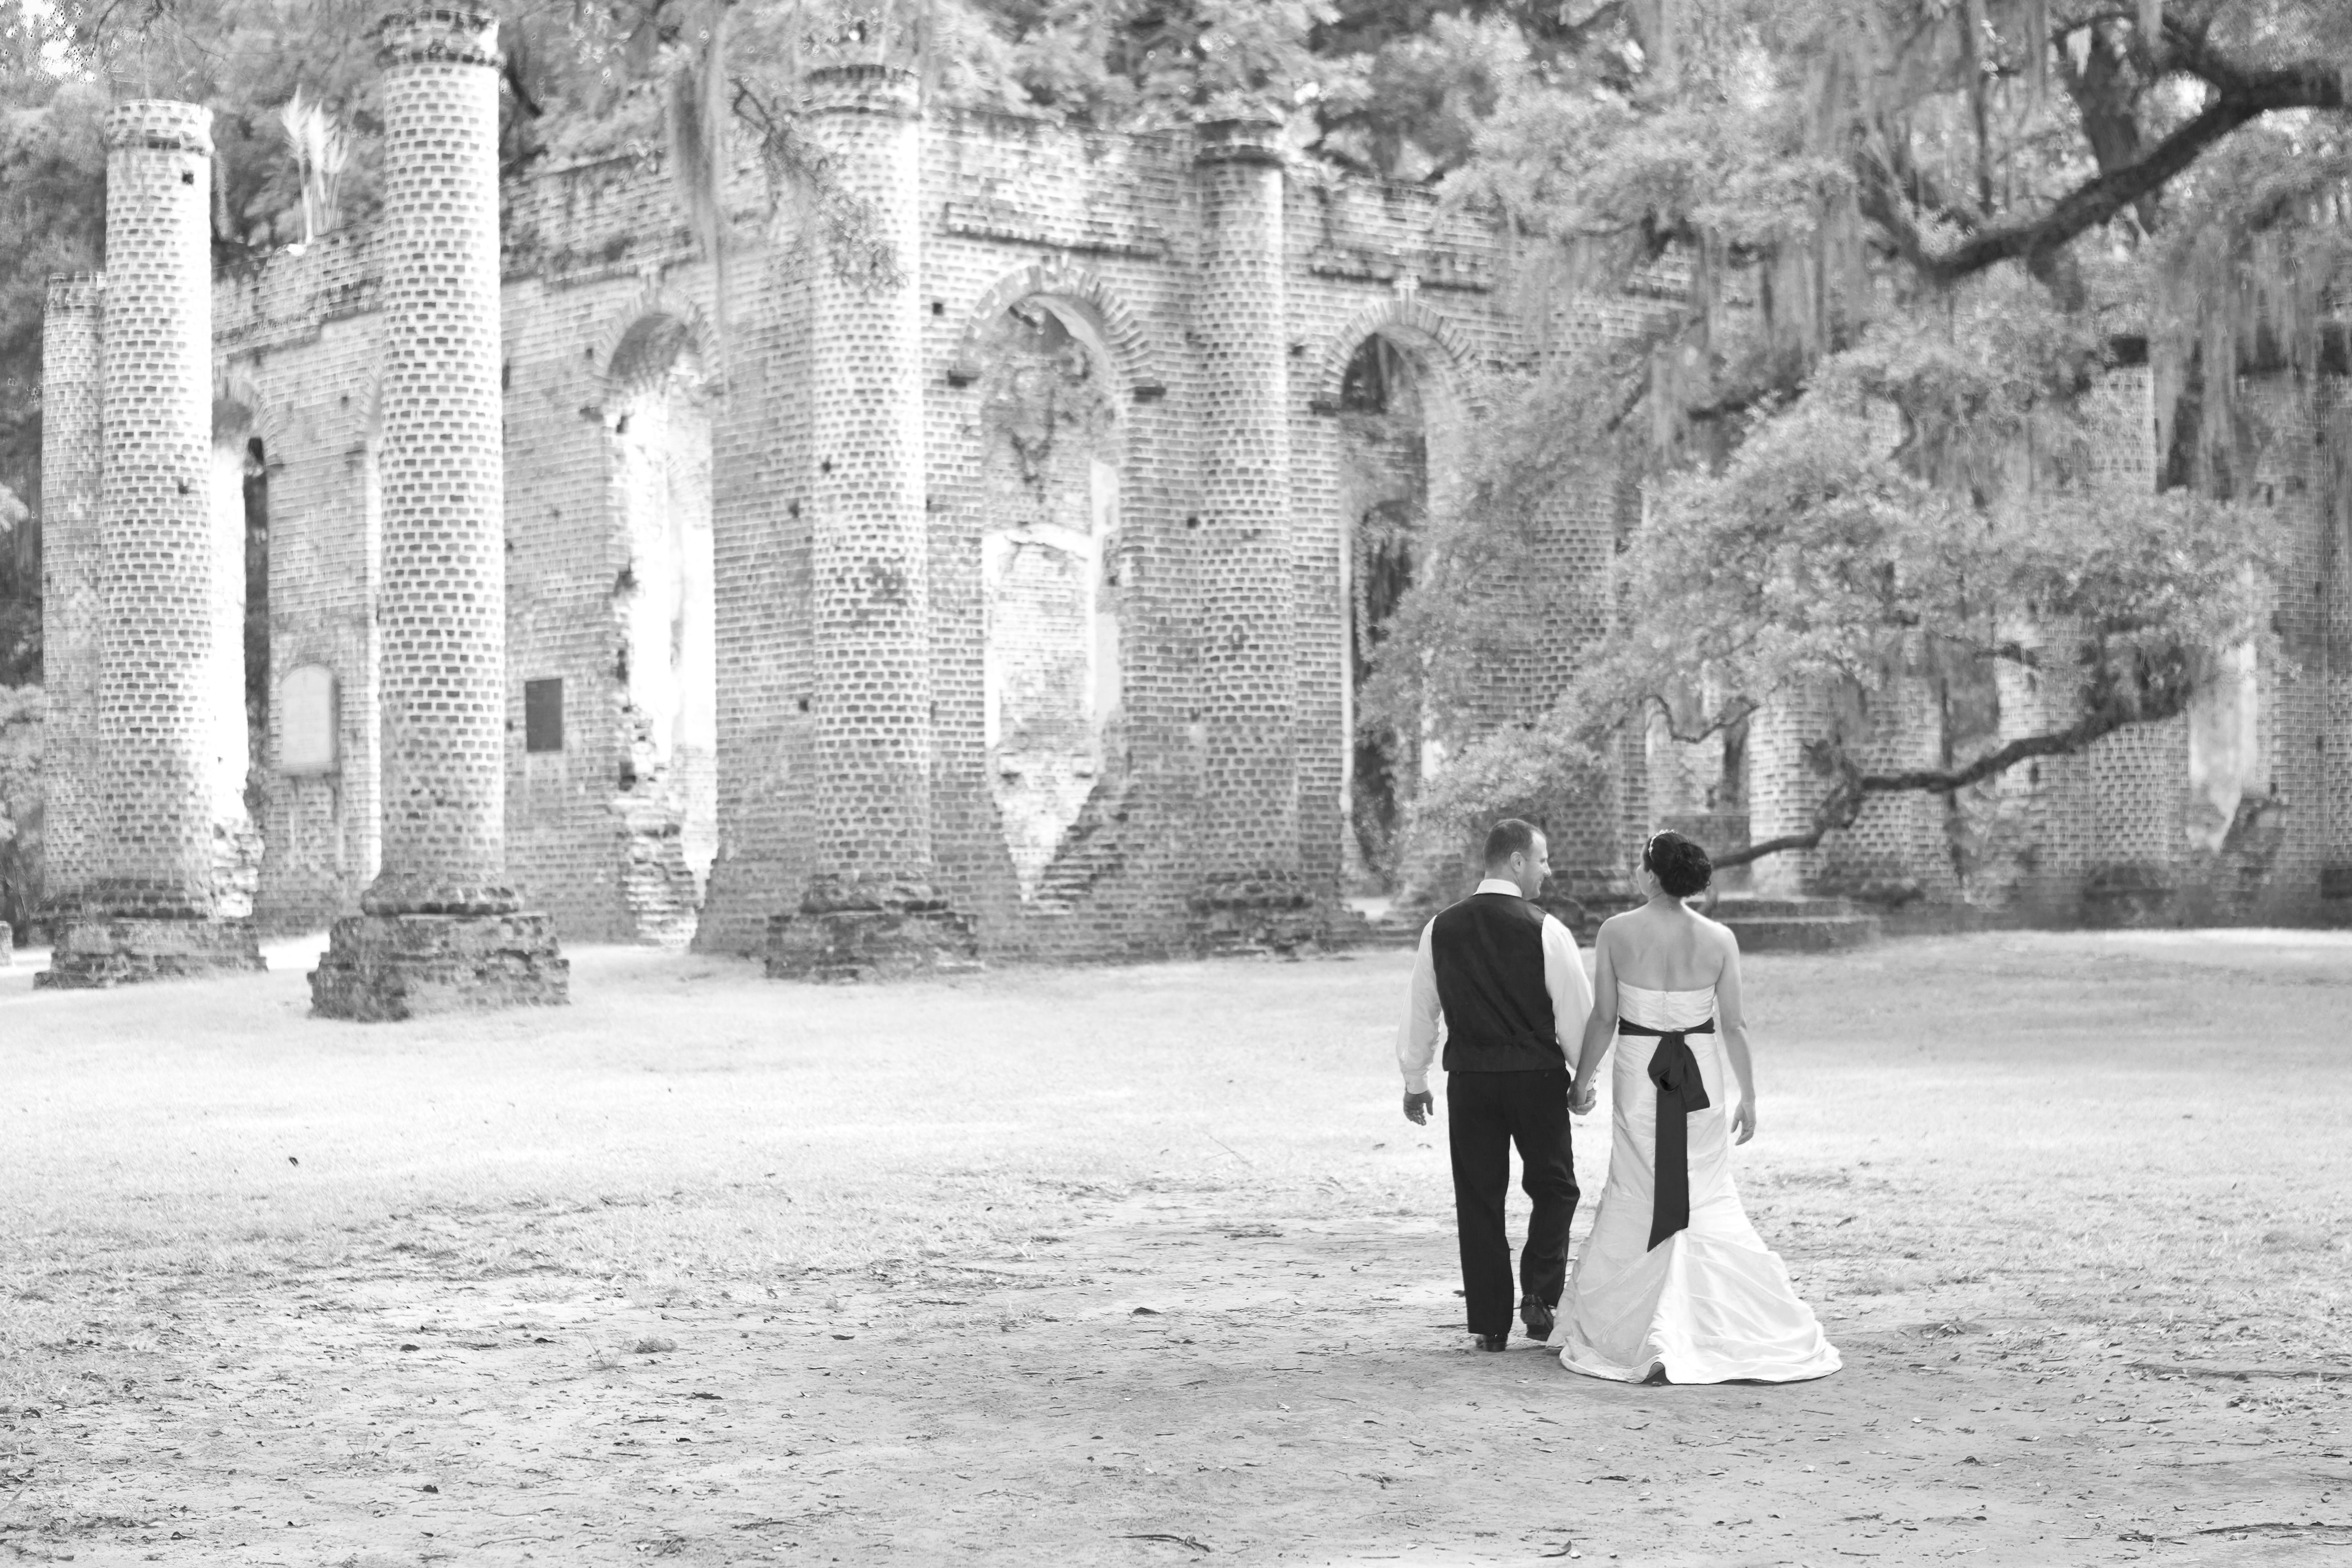 If You Are Seeking A Place To Get Married Consider Beaufort Sc We Have Variety Of Venues And Beautiful Atmosphere That Will Ensure Your Wedding